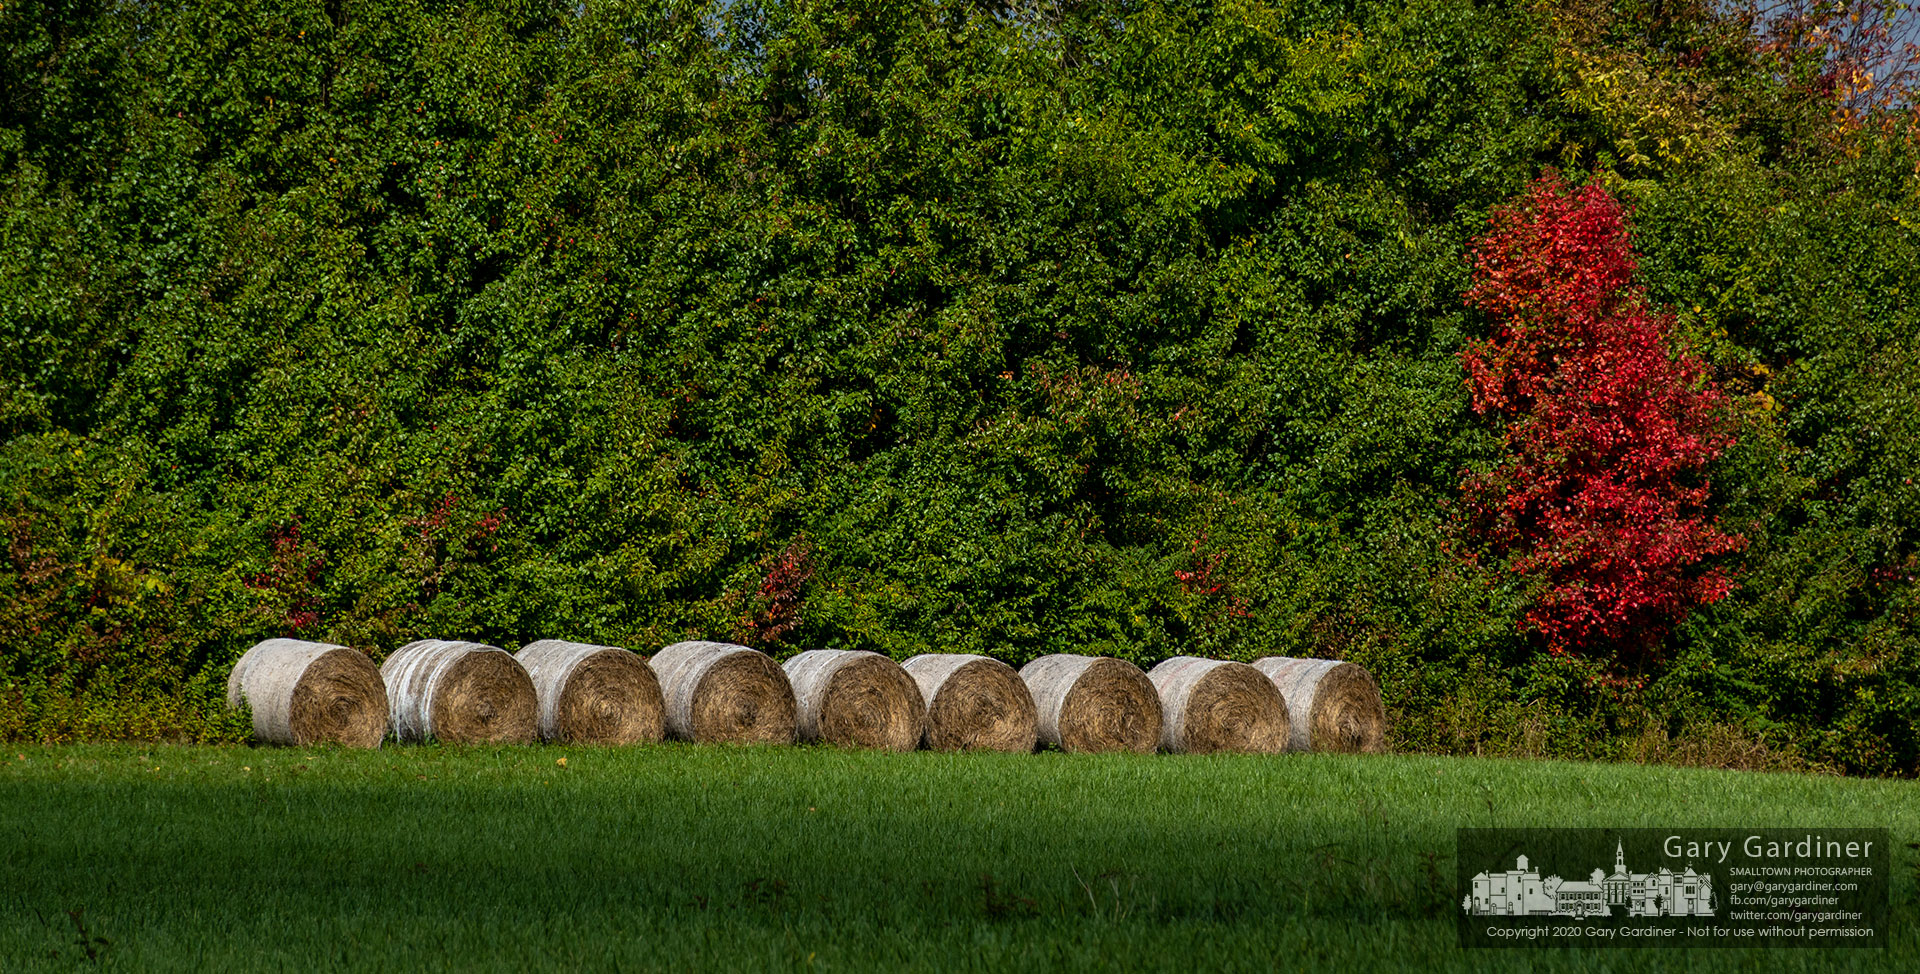 Rolls of hay are punctuated by a single tree showing fall colors on the fenceline of the Braun Farm. My Final Photo for Oct. 5, 2020.